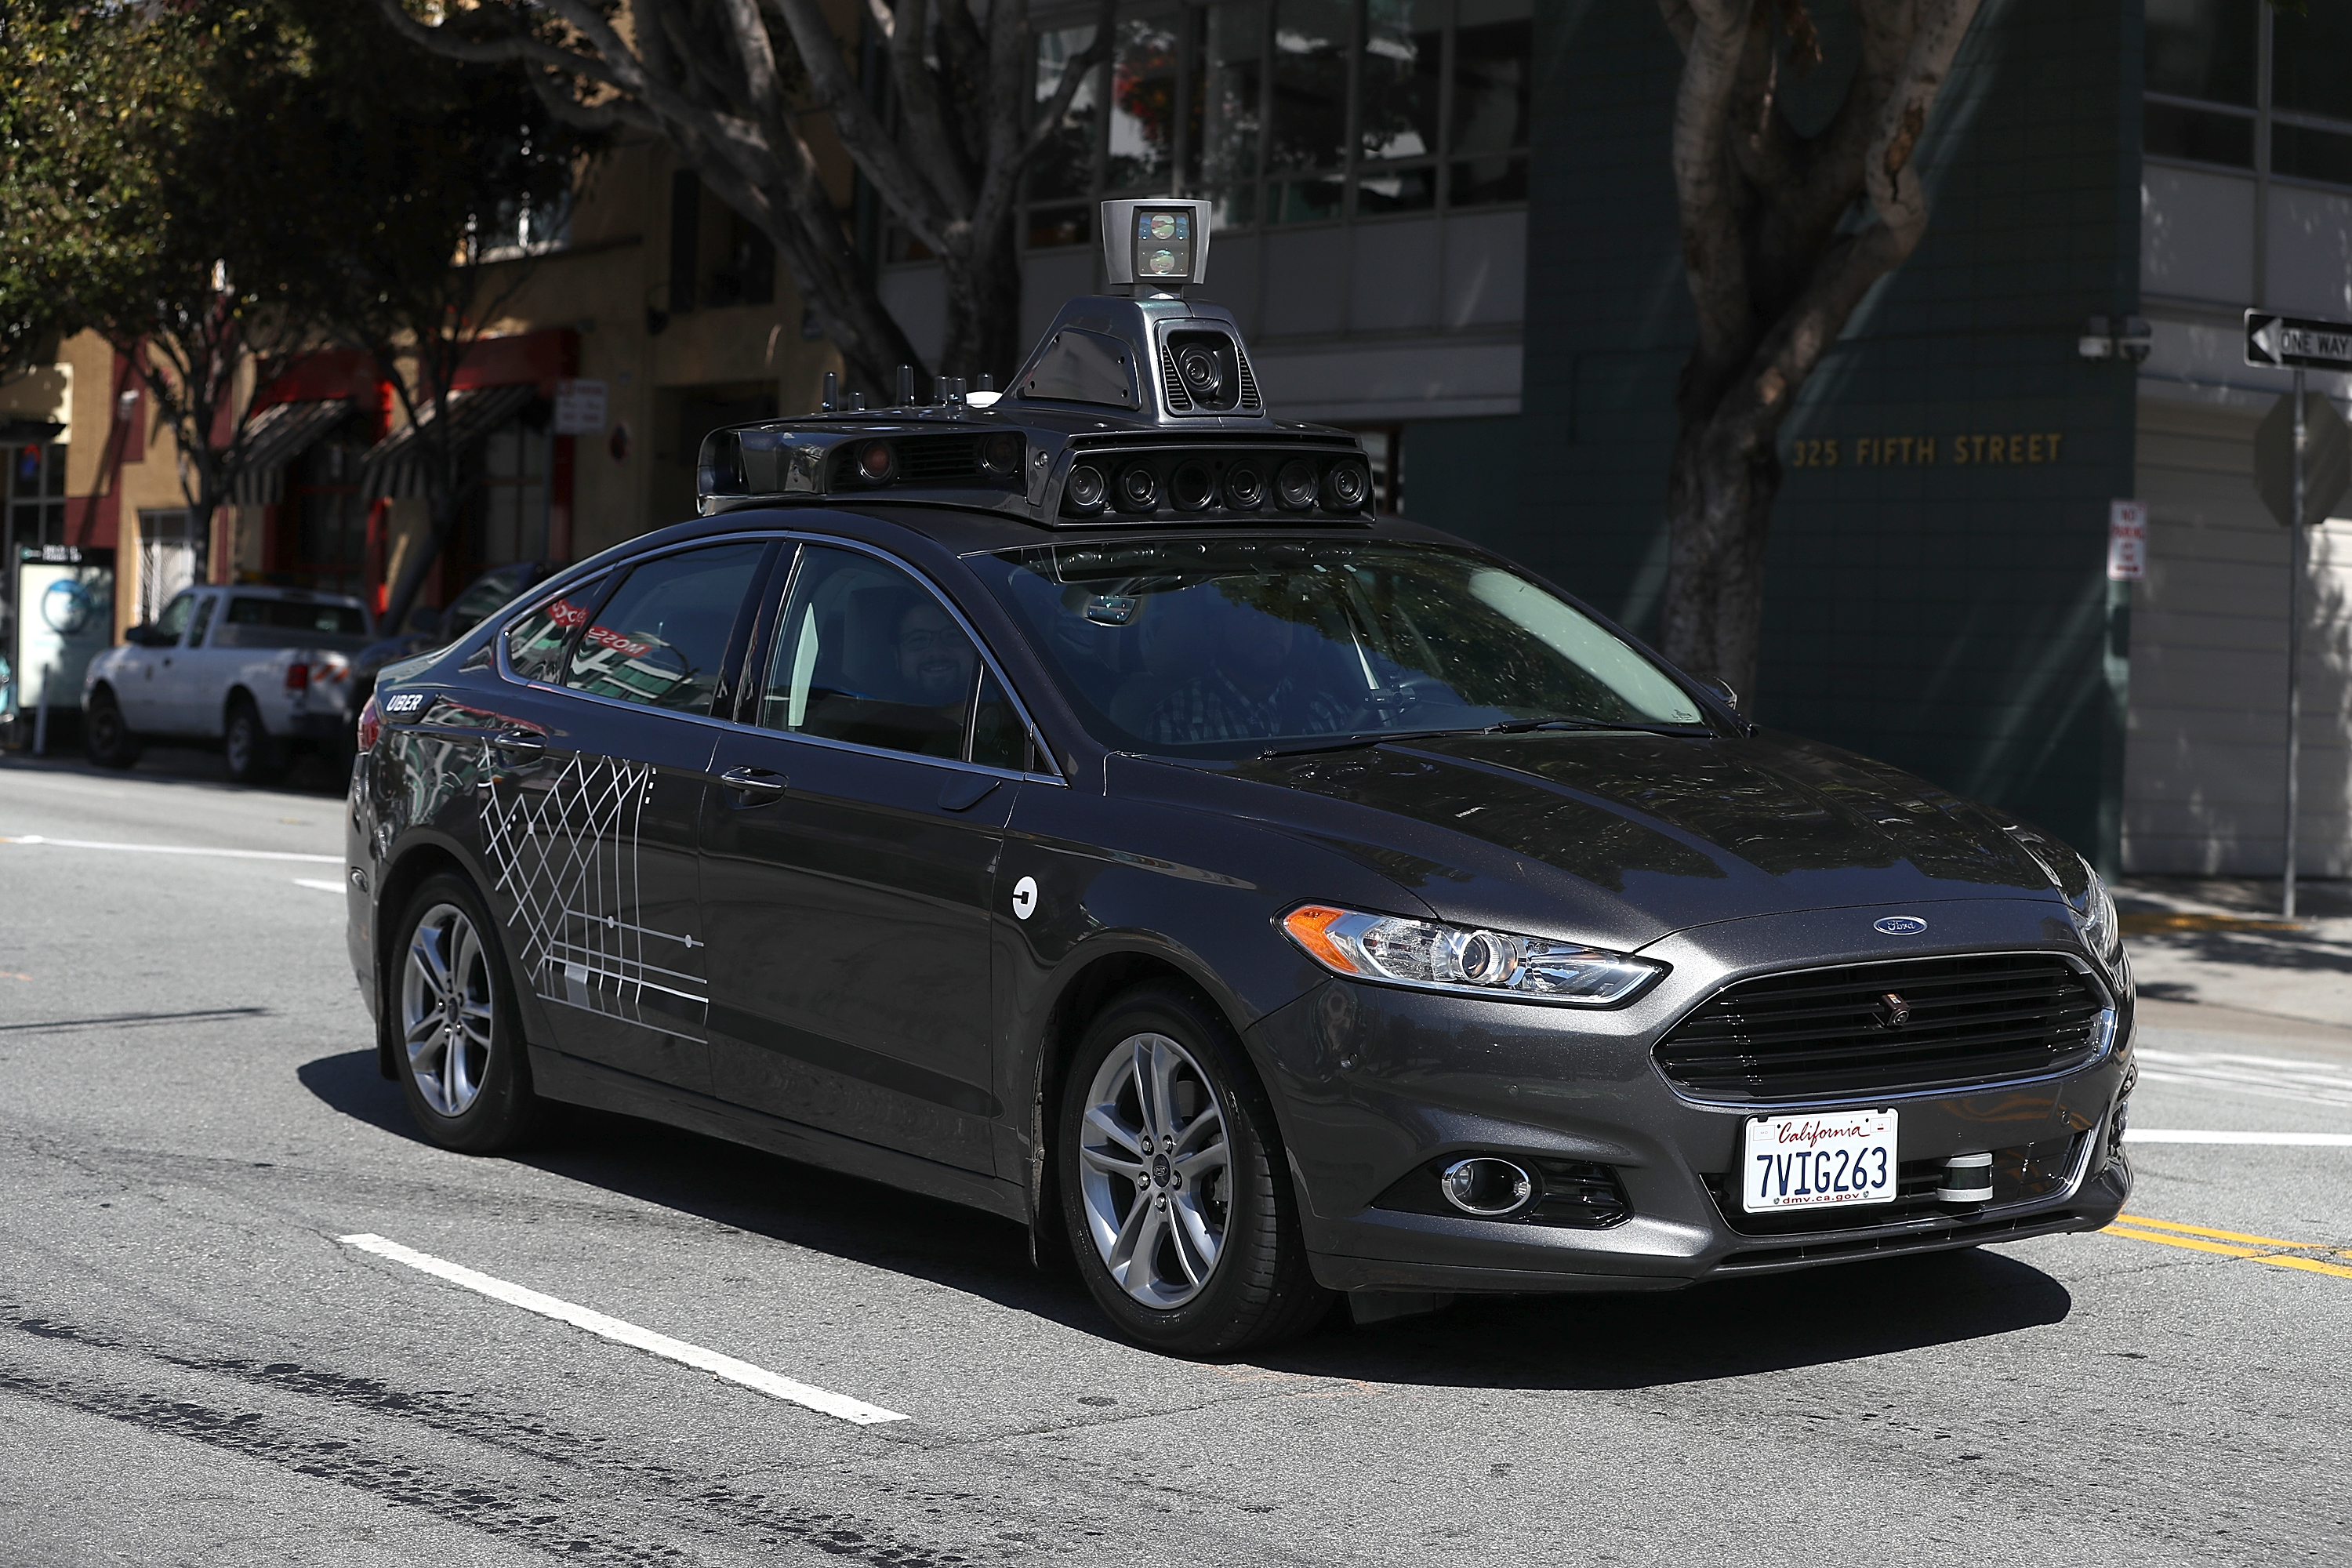 California now allows driverless cars without a human behind the